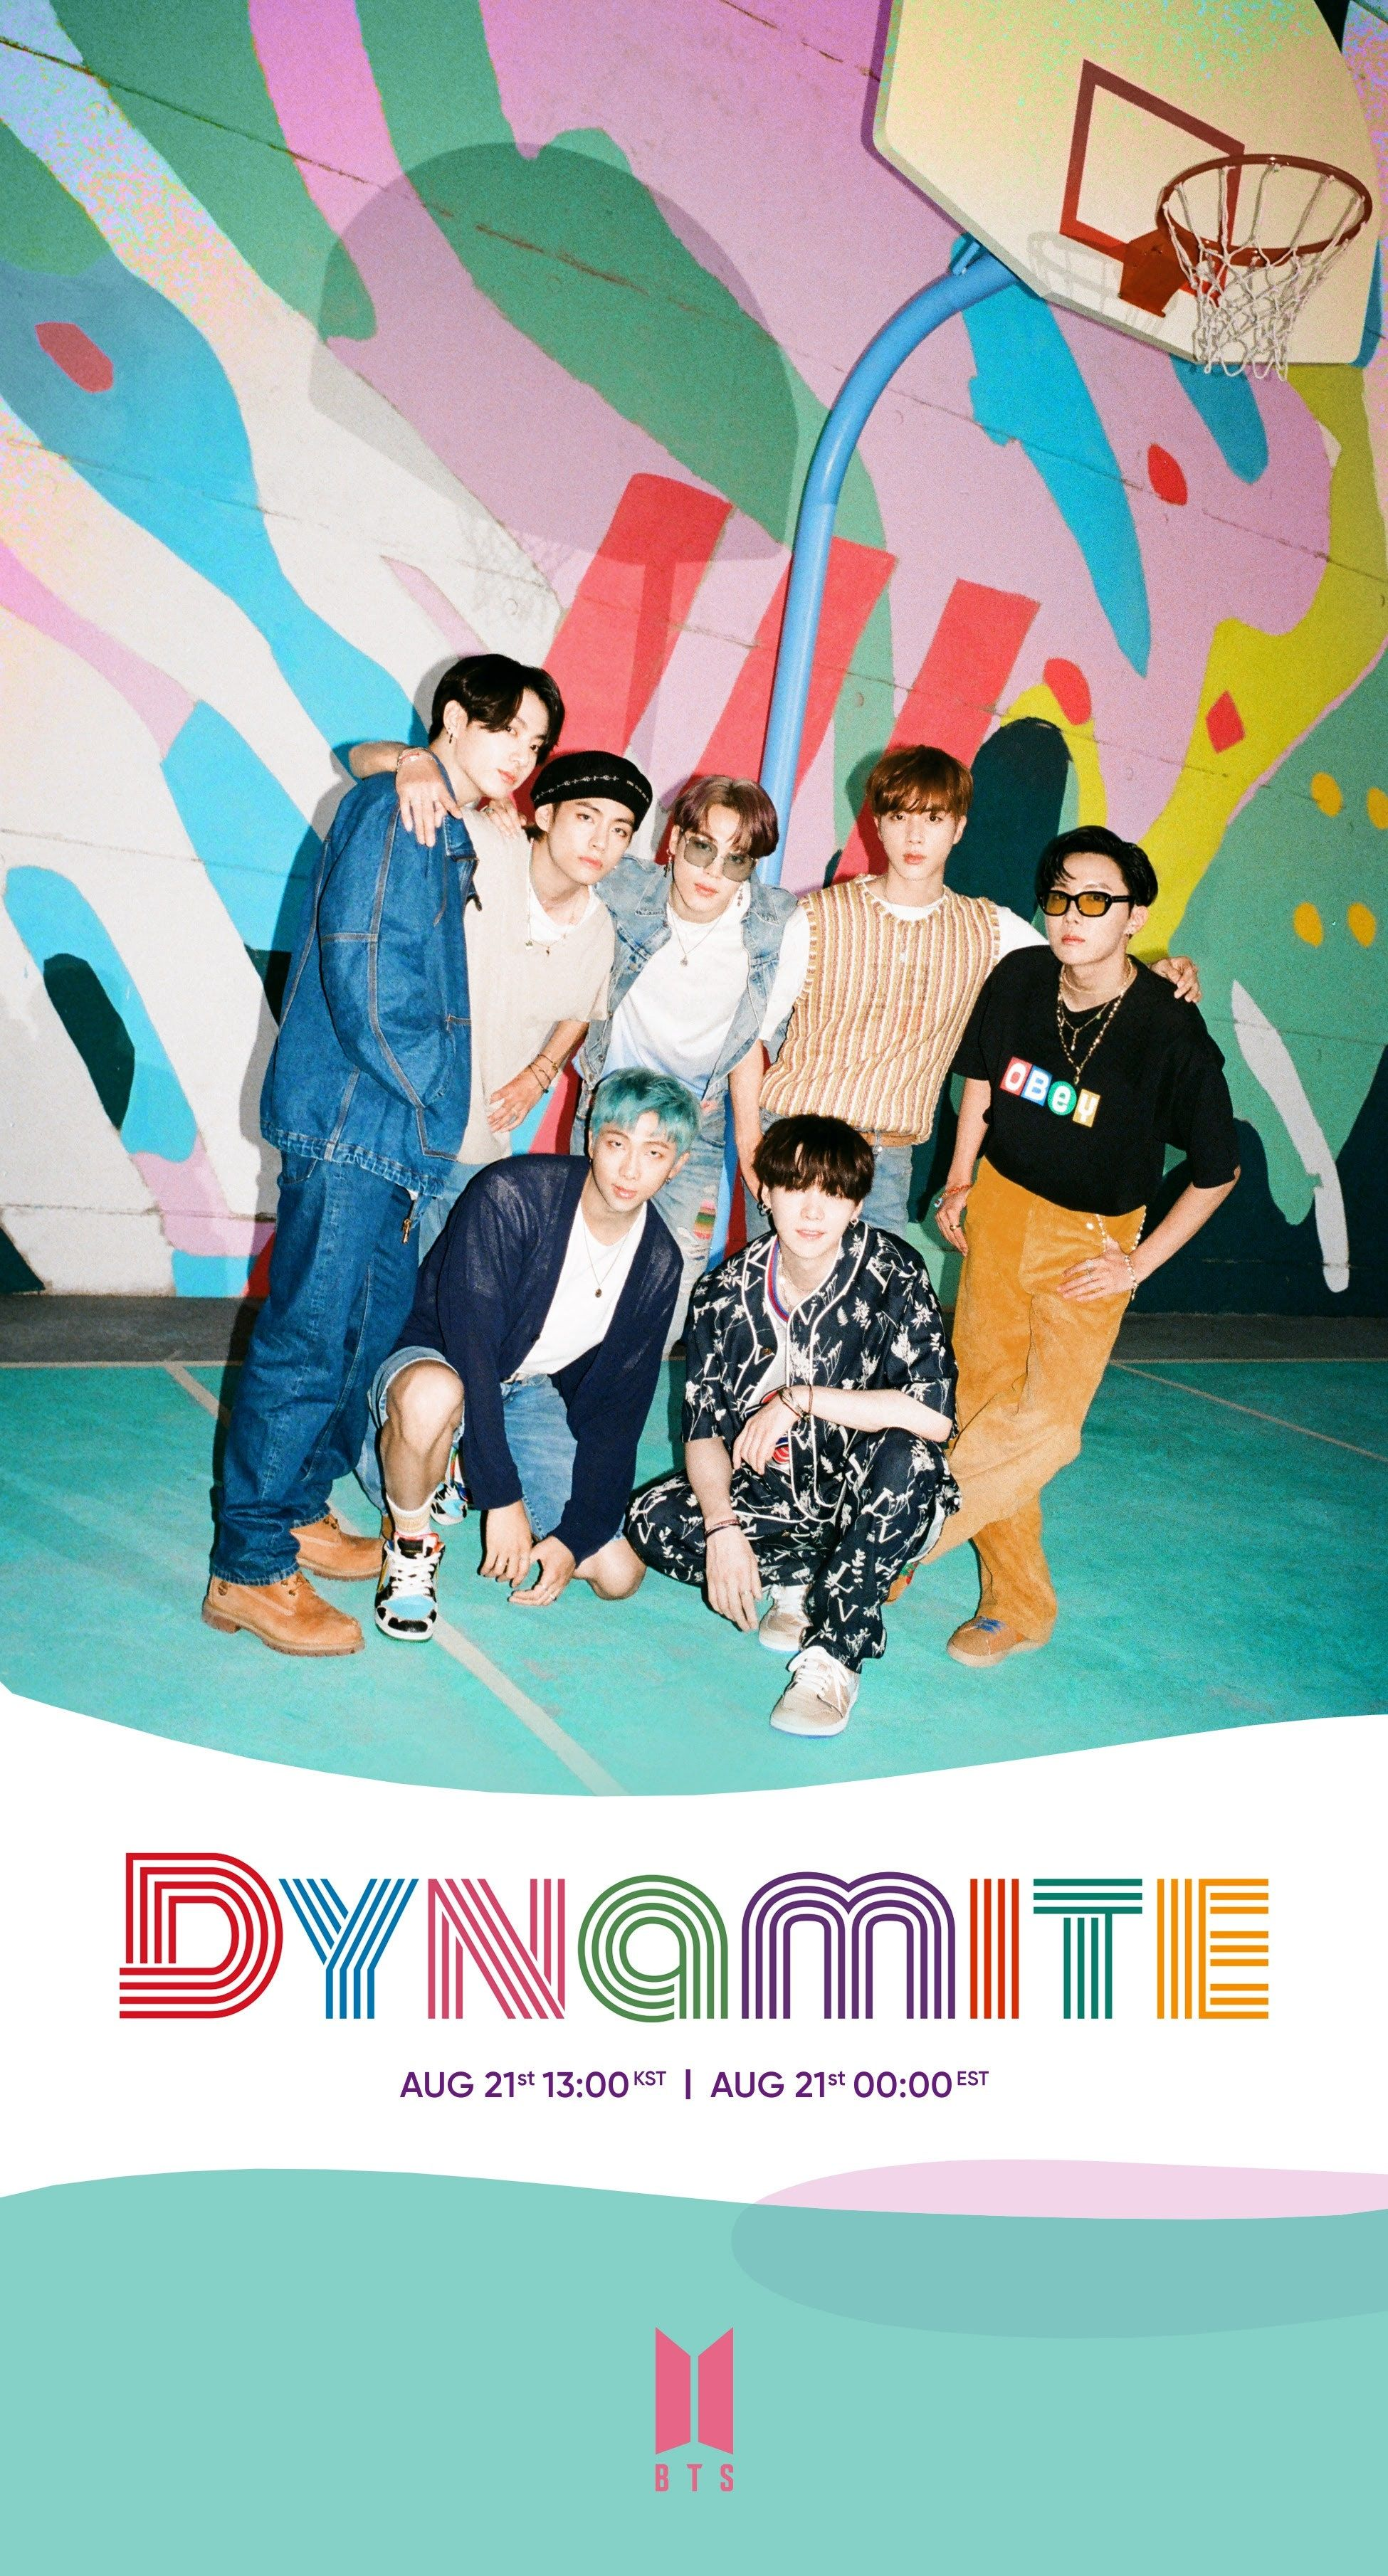 Bts Dynamite Wallpapers Top Free Bts Dynamite Backgrounds Wallpaperaccess